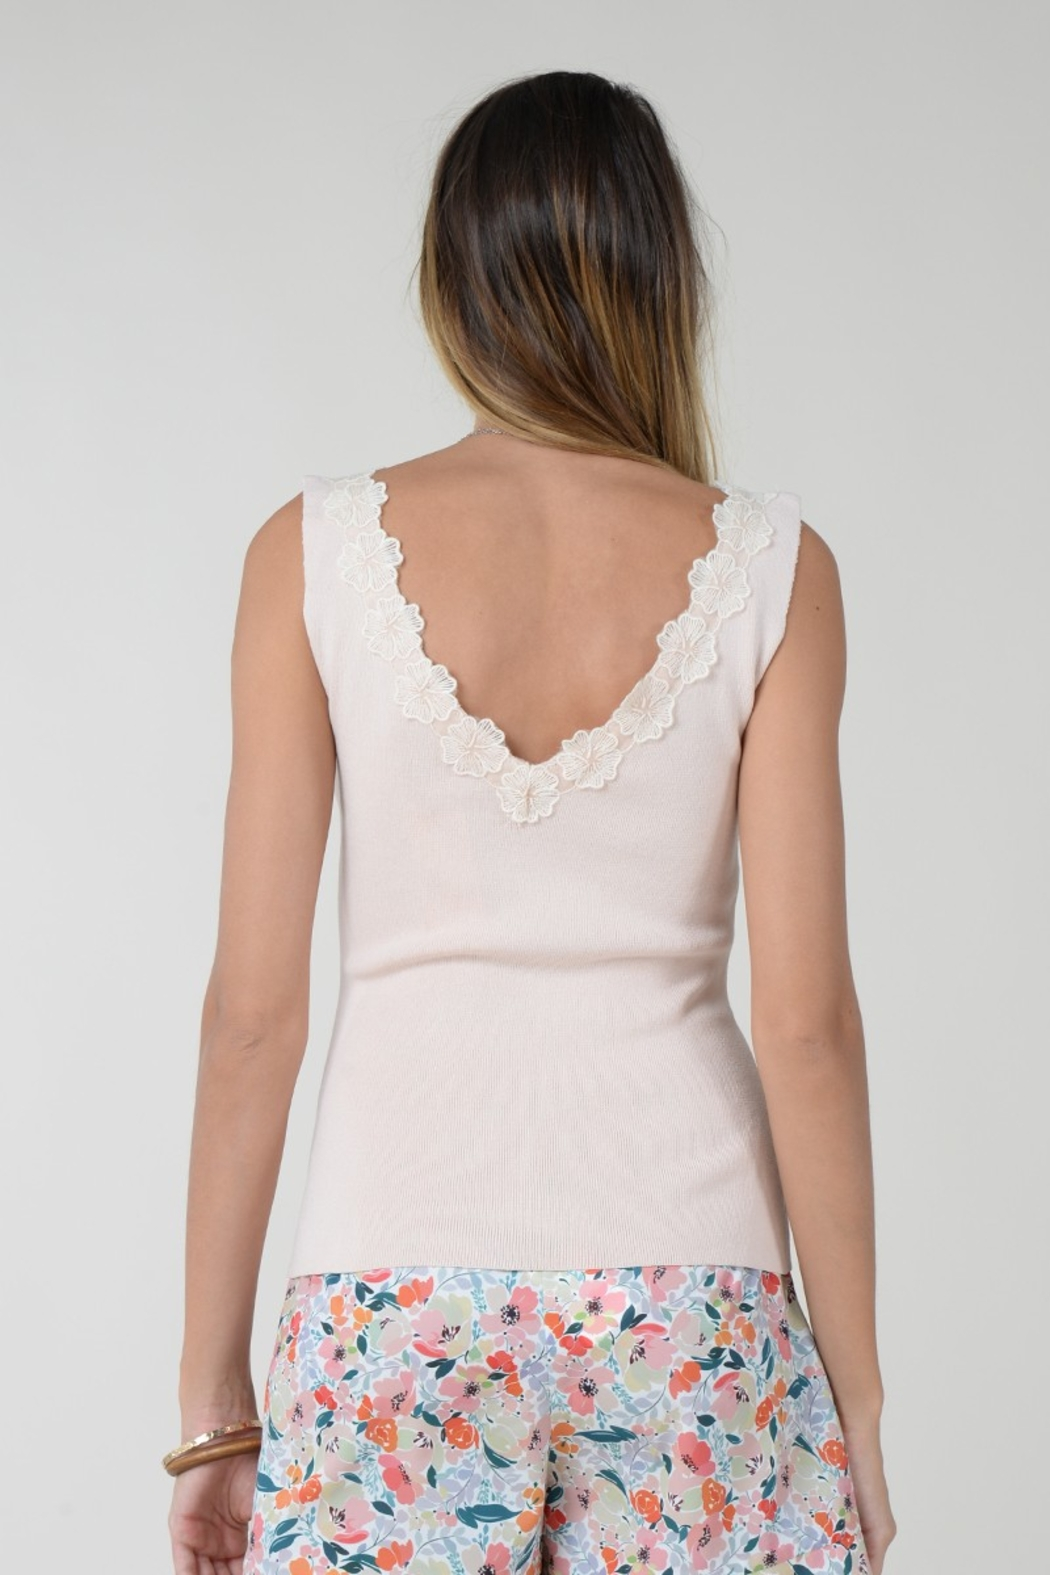 Molly Bracken TOP WITH FLOWER ACCENT - Back Cropped Image